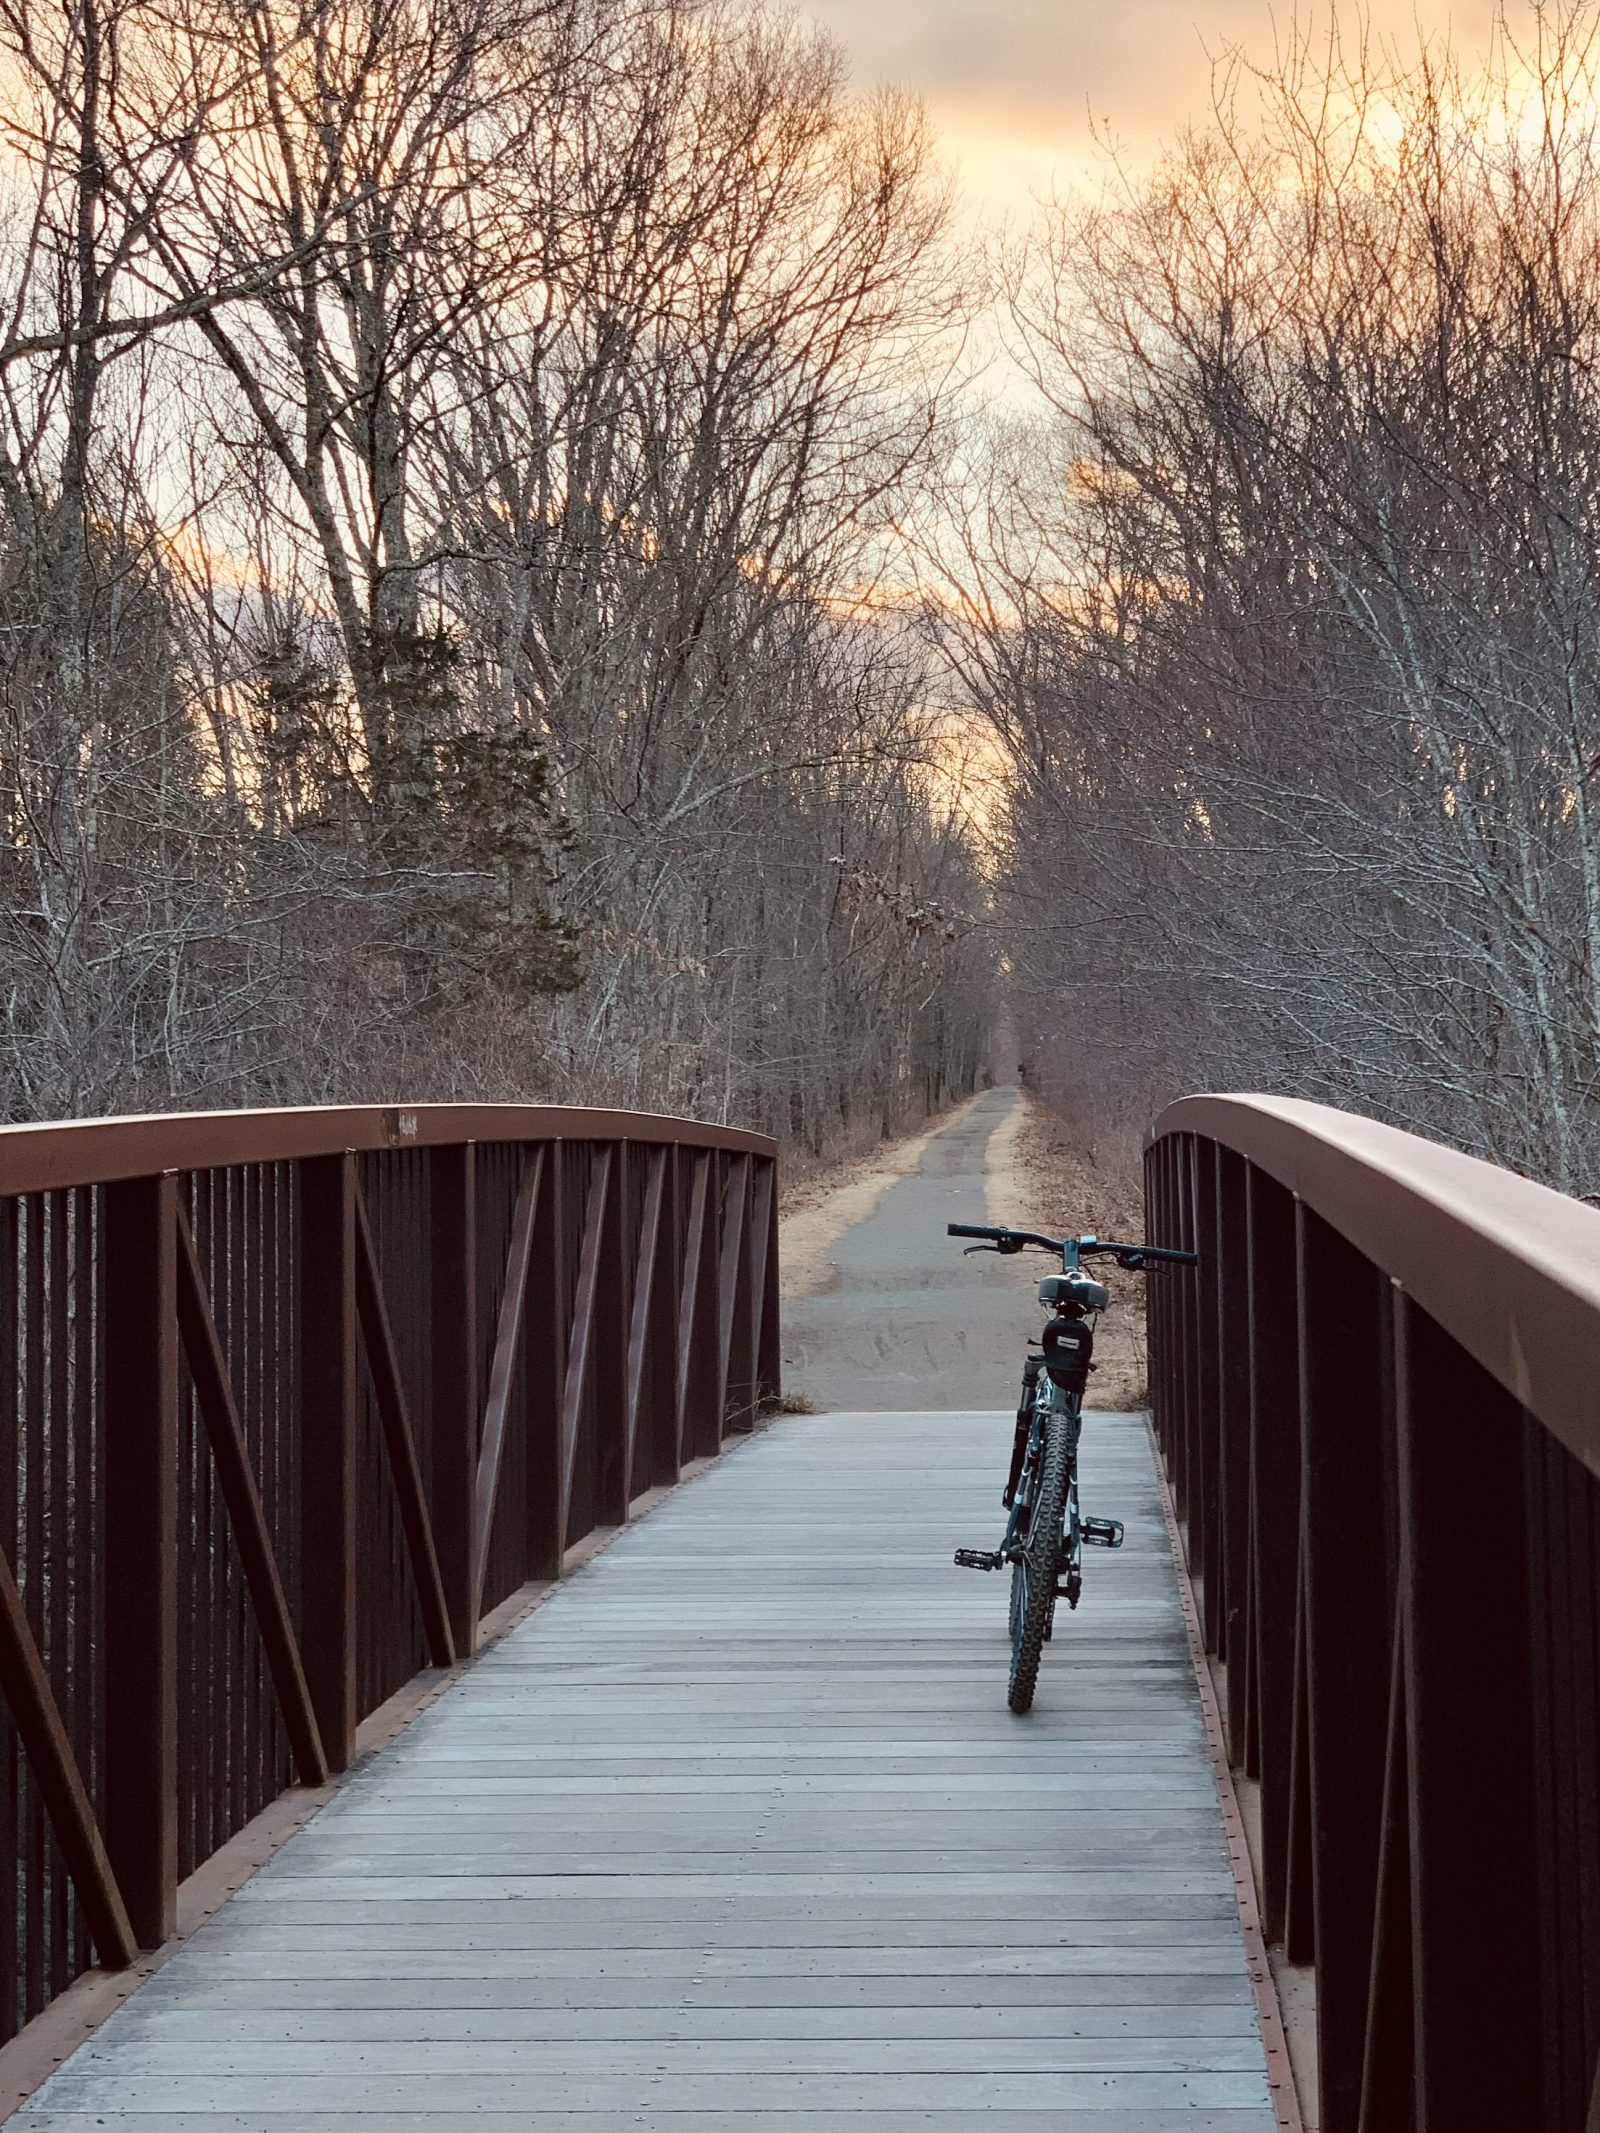 Bike Trail at Day's End